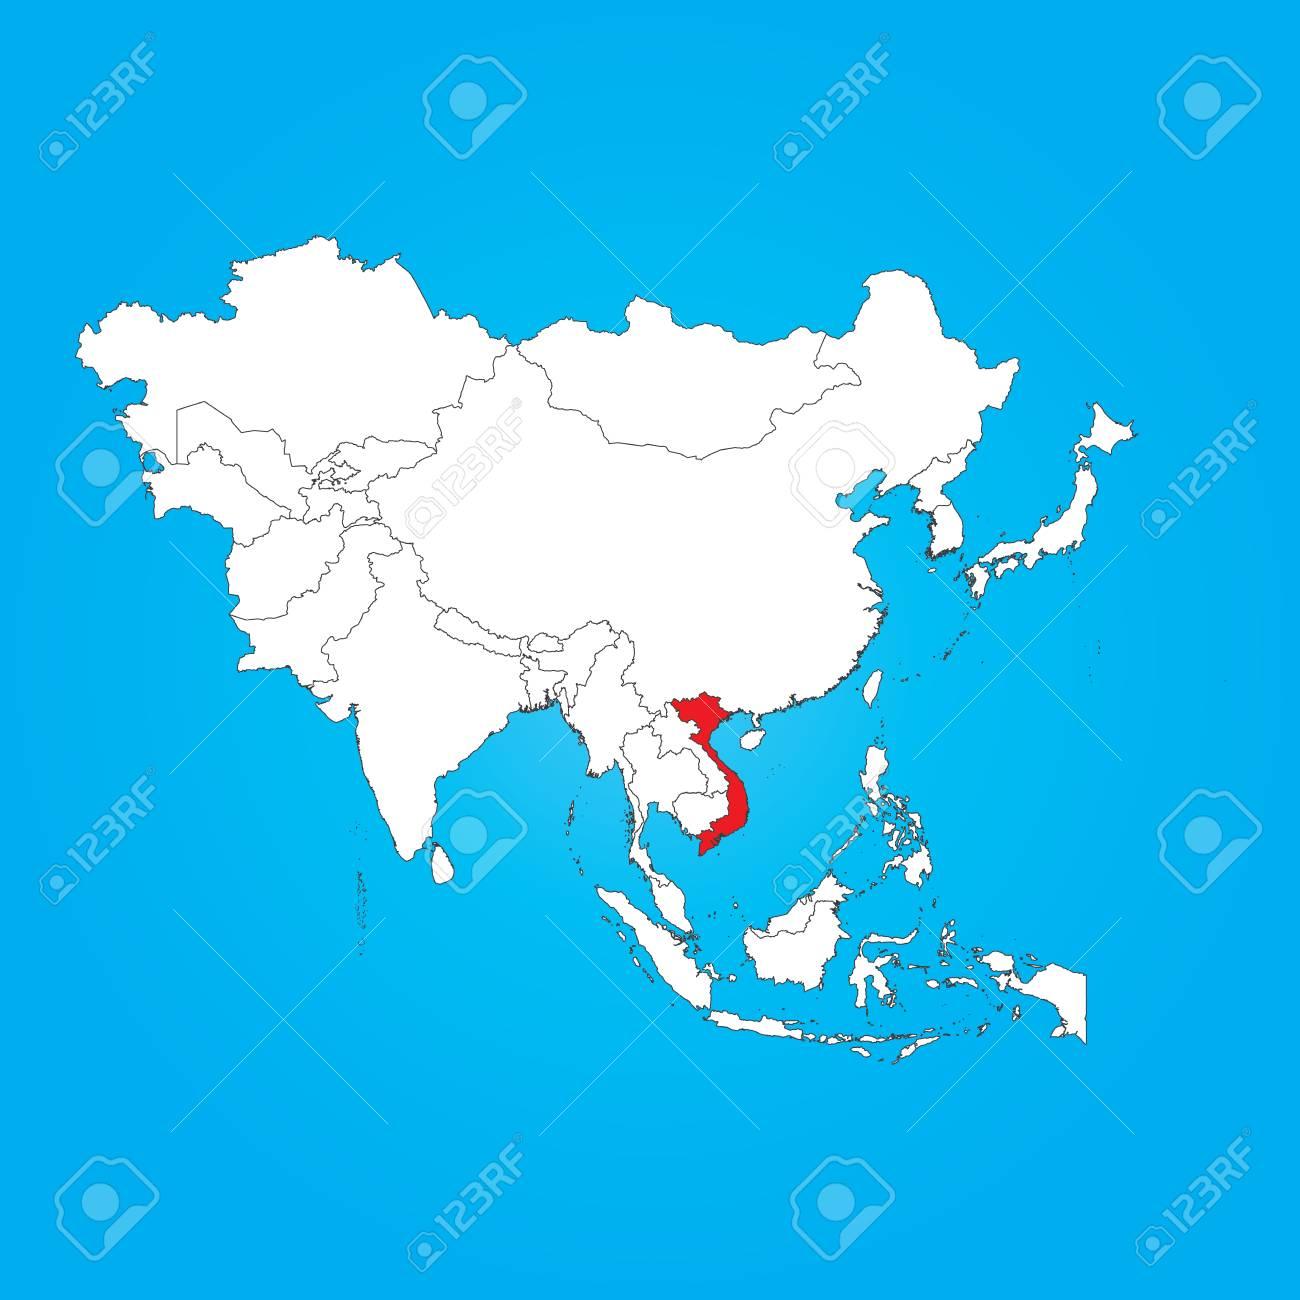 A Map Of Asia With A Selected Country Of Vietnam Royalty Free Cliparts Vectors And Stock Illustration Image 32369038